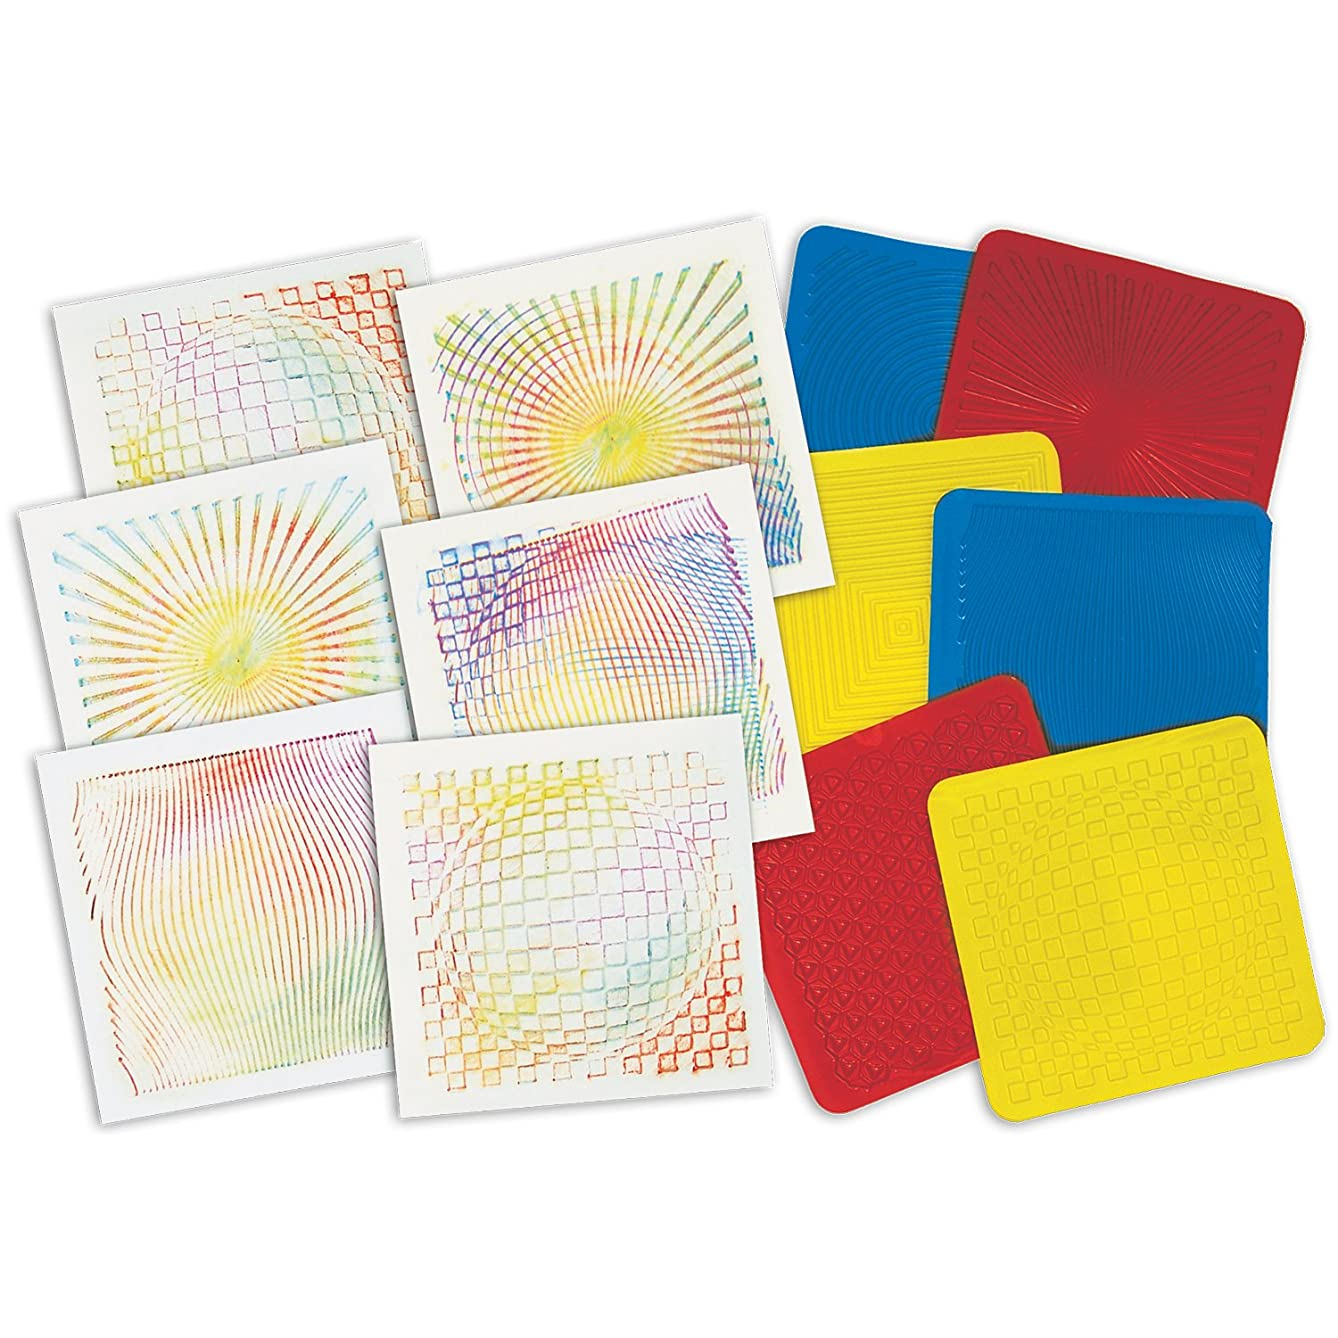 ROYLCO R5841 Optical Illusion 7 by 7-Inch Rubbing Plates, 6-Pack